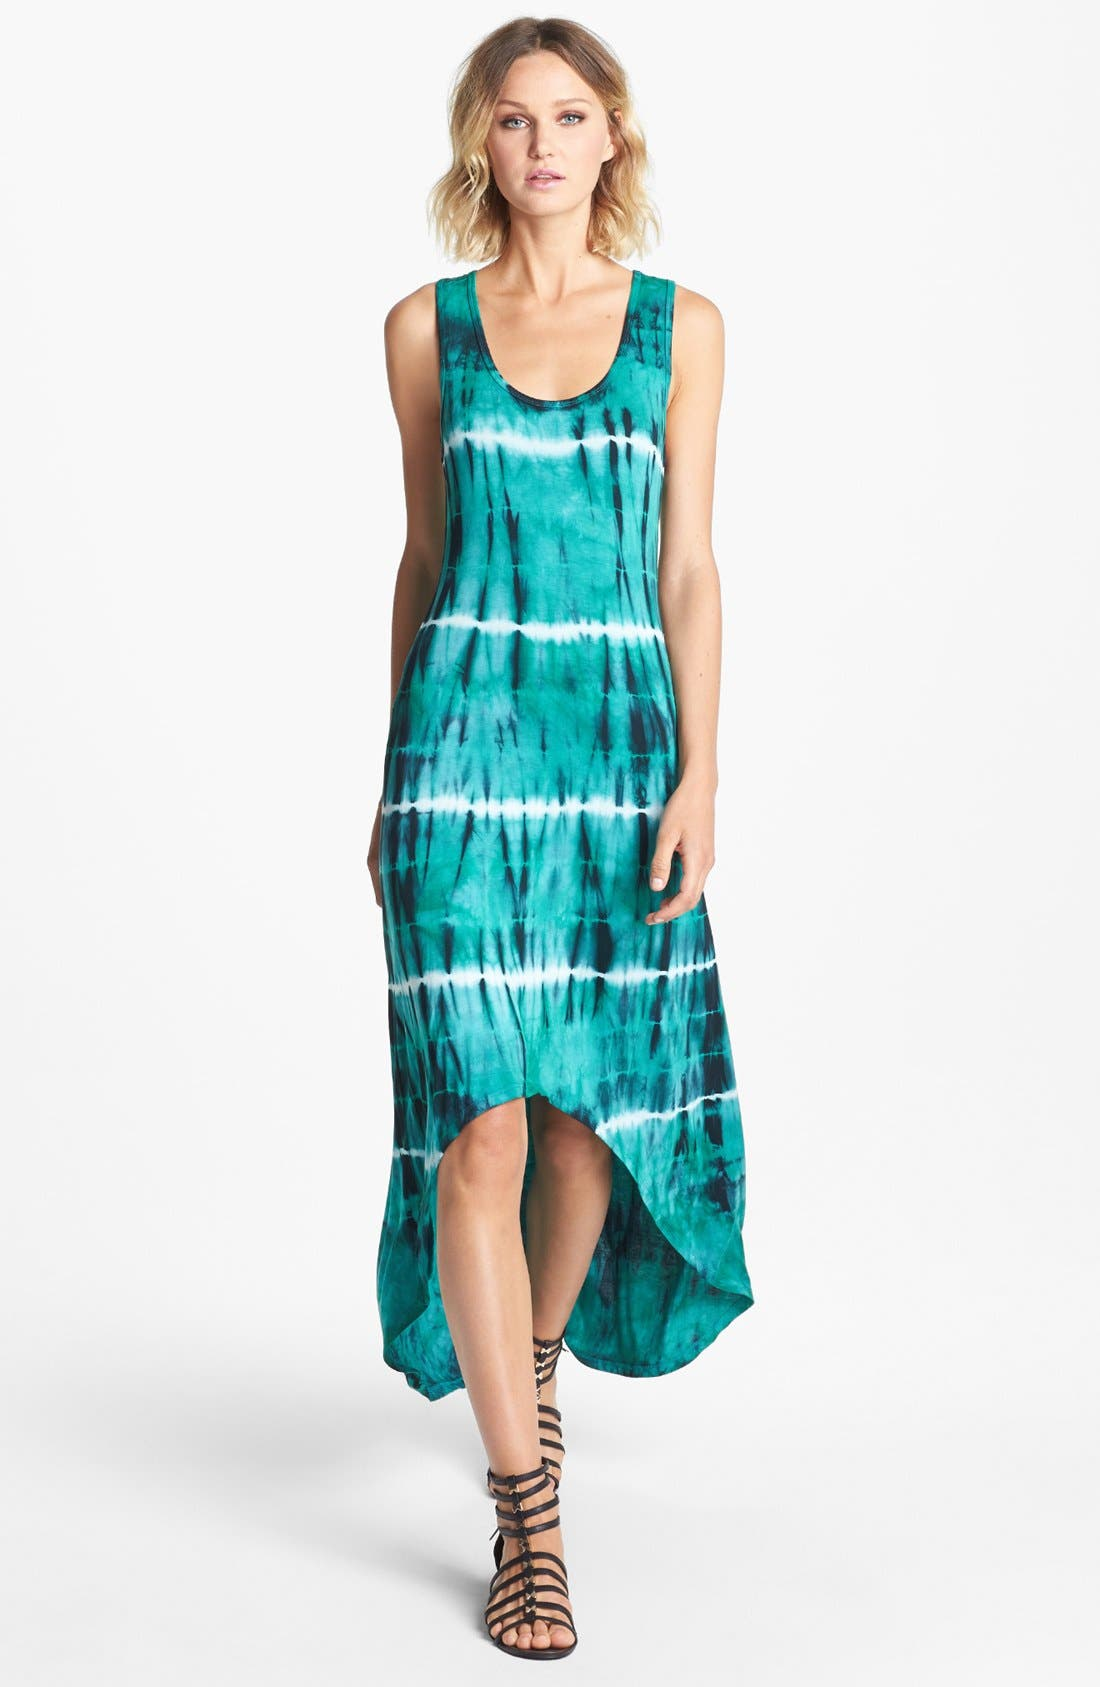 Main Image - Felicity & Coco 'Ivy' Tie Dye Maxi Dress (Nordstrom Exclusive)